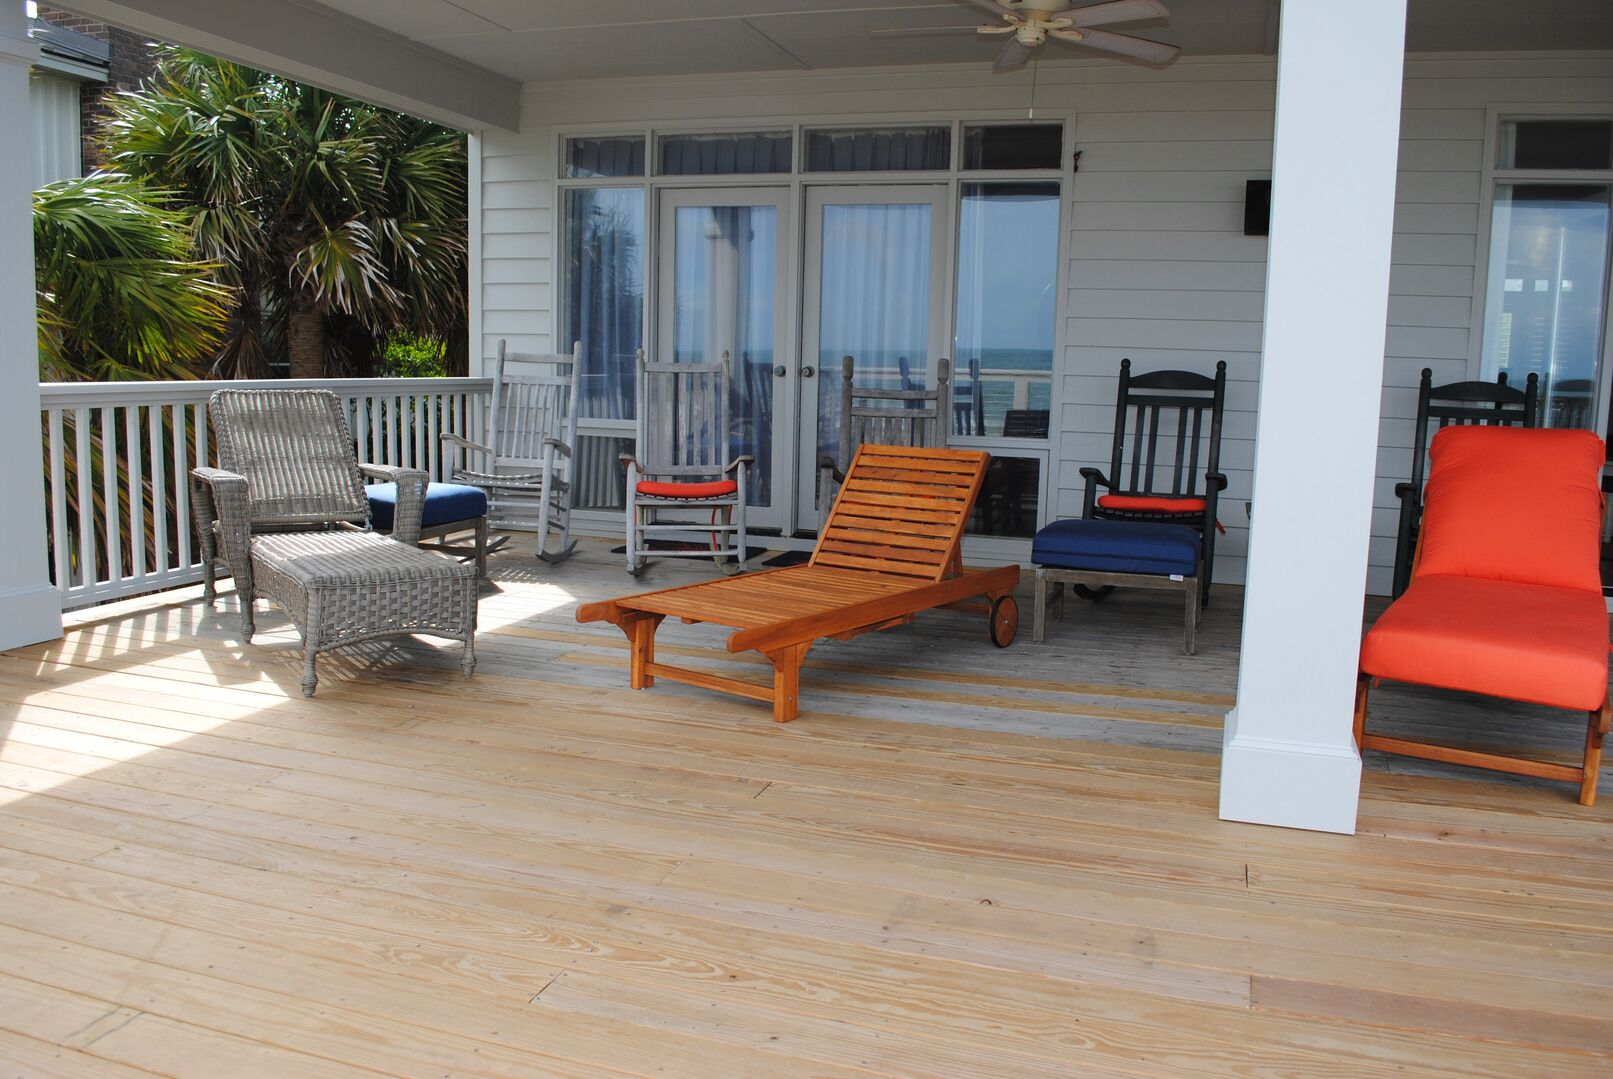 Covered Porch and Sun Deck